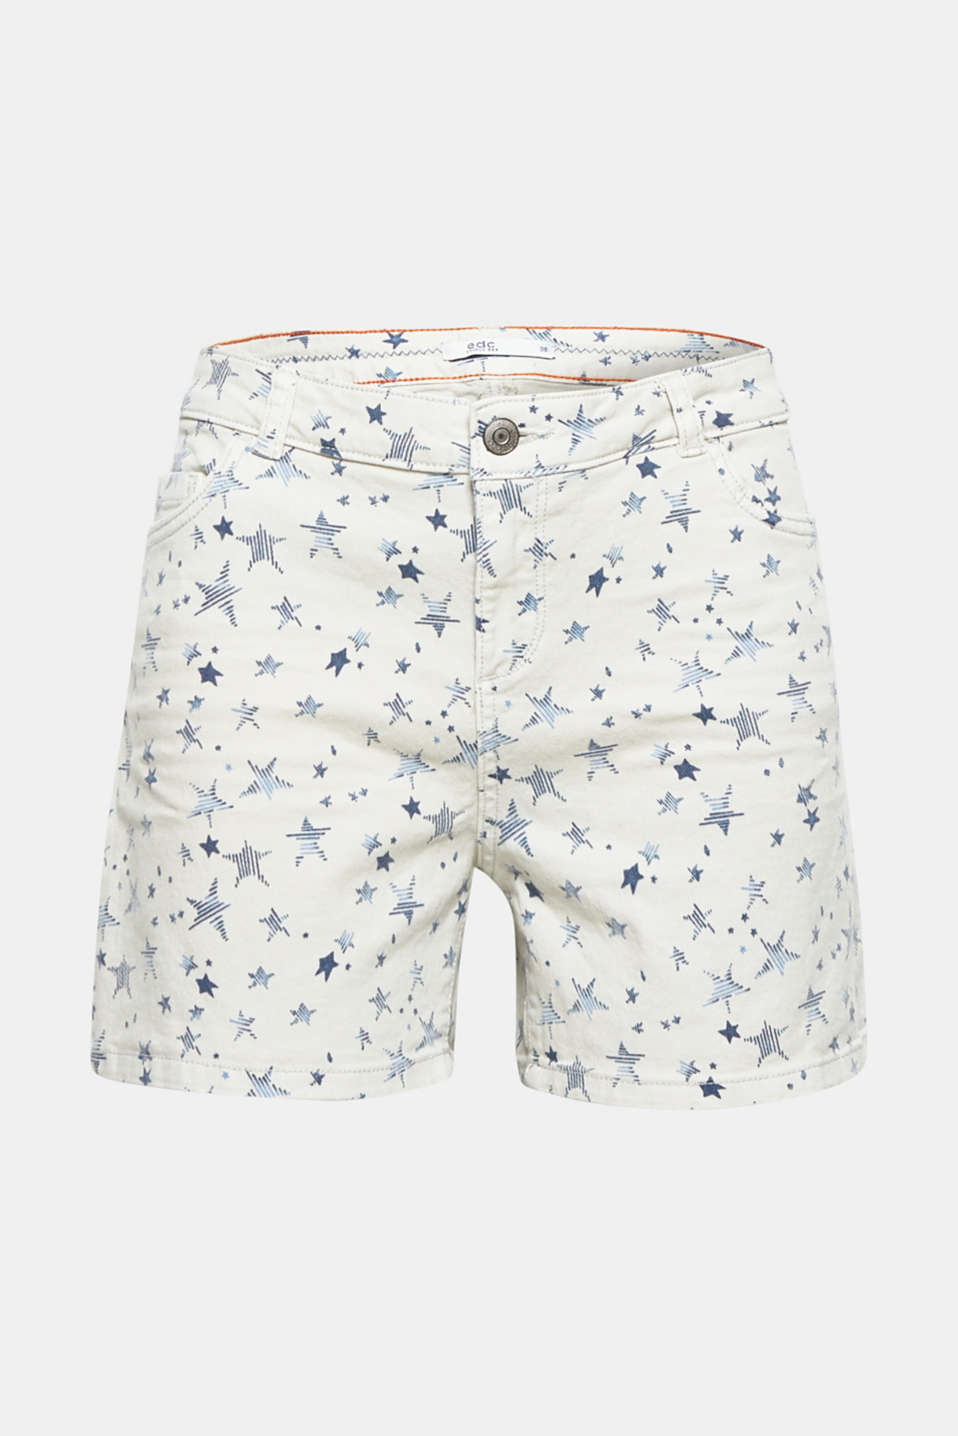 A star on warm days: The trendy star design gives these denim shorts with stretch for comfort their cool character.